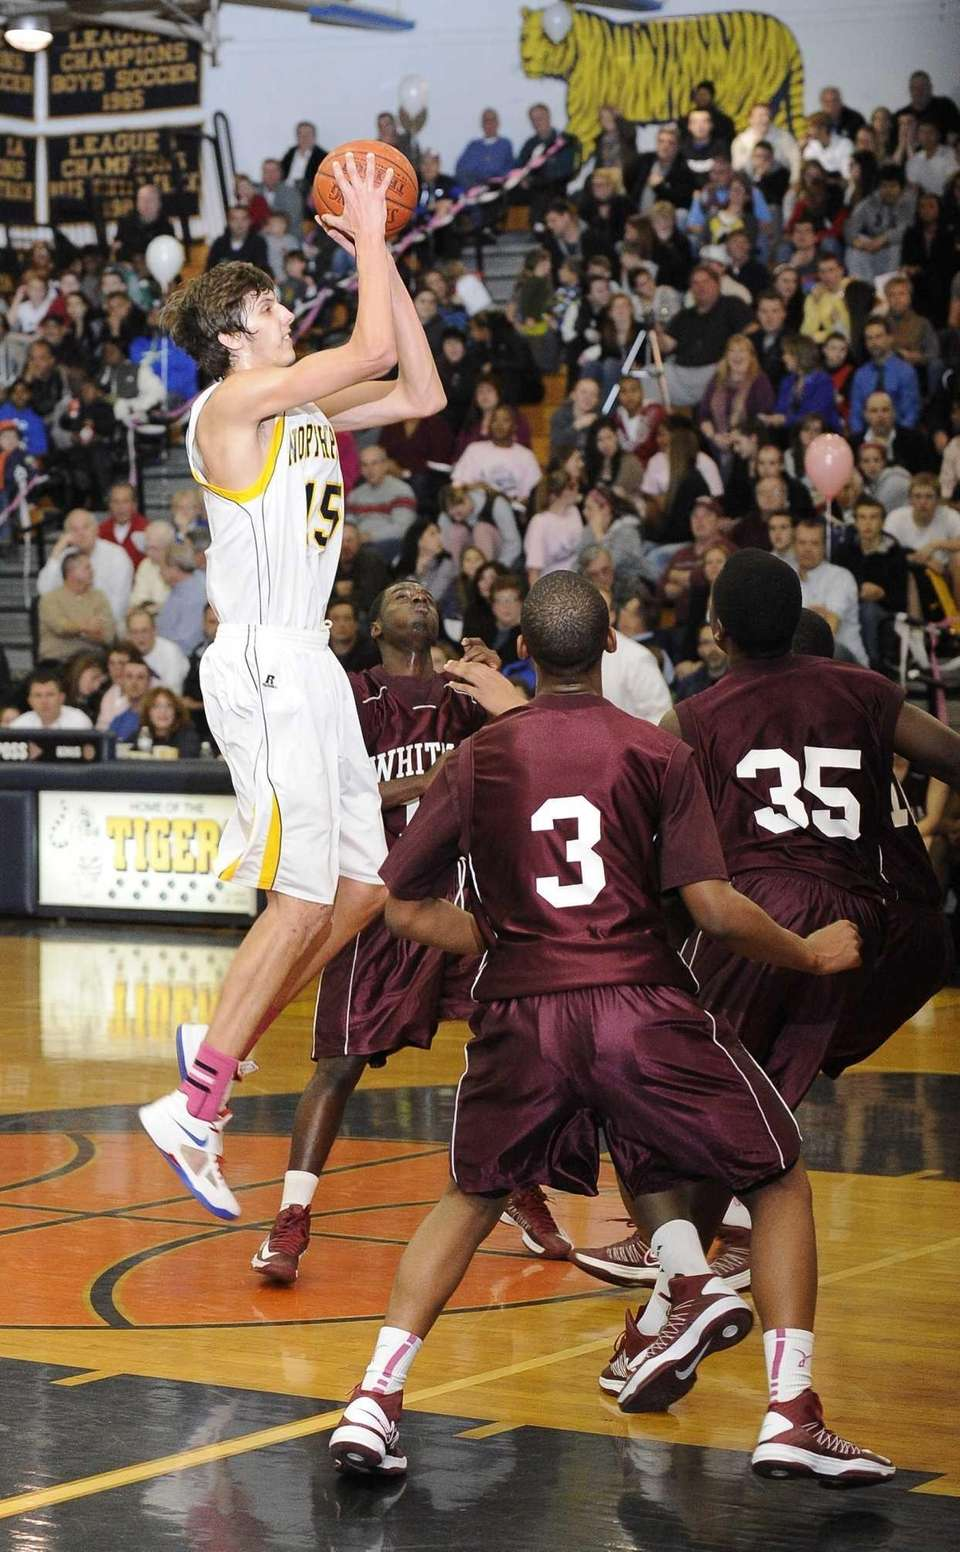 Northport's Luke Petrasek shoots over his Whitman defenders.